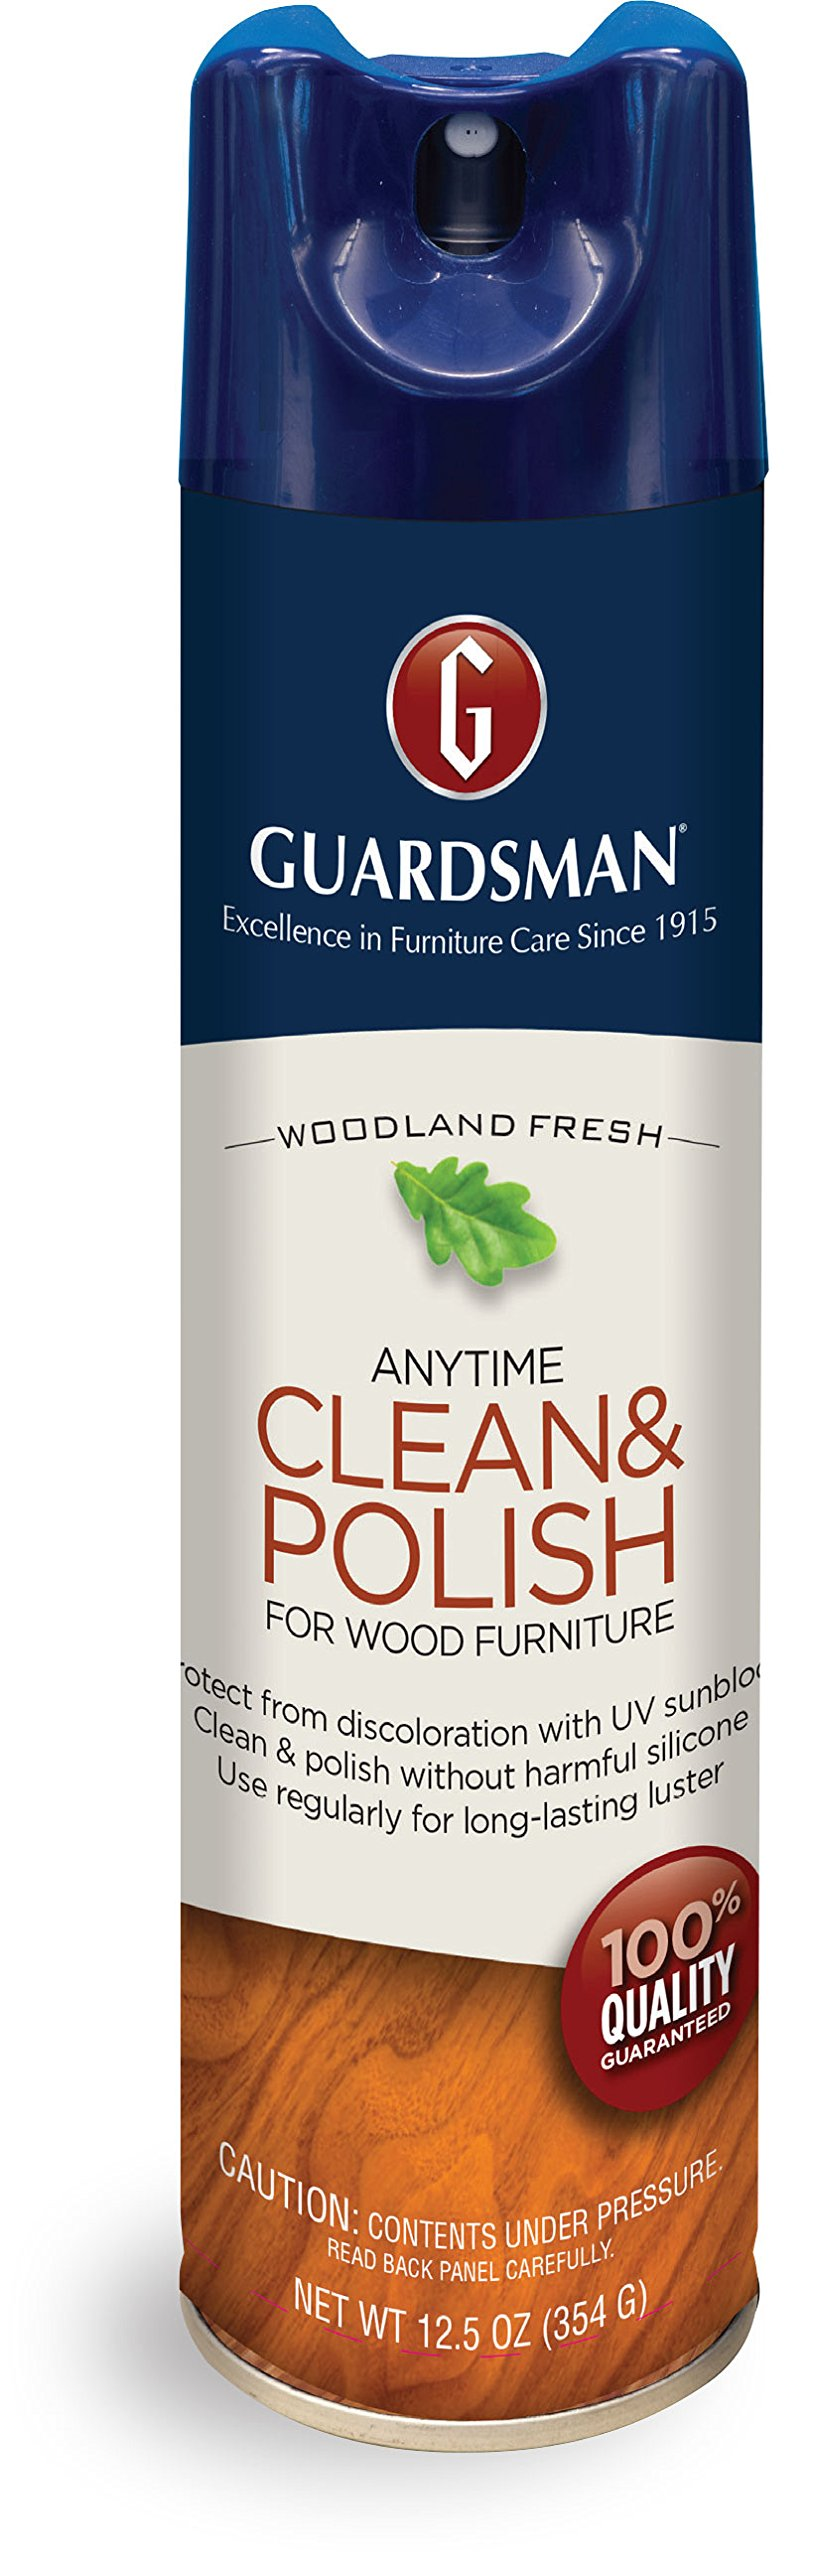 Guardsman Clean & Polish For Wood Furniture - Woodland Fresh - 12.5 oz - Silicone Free, UV Protection - 460100 by Guardsman